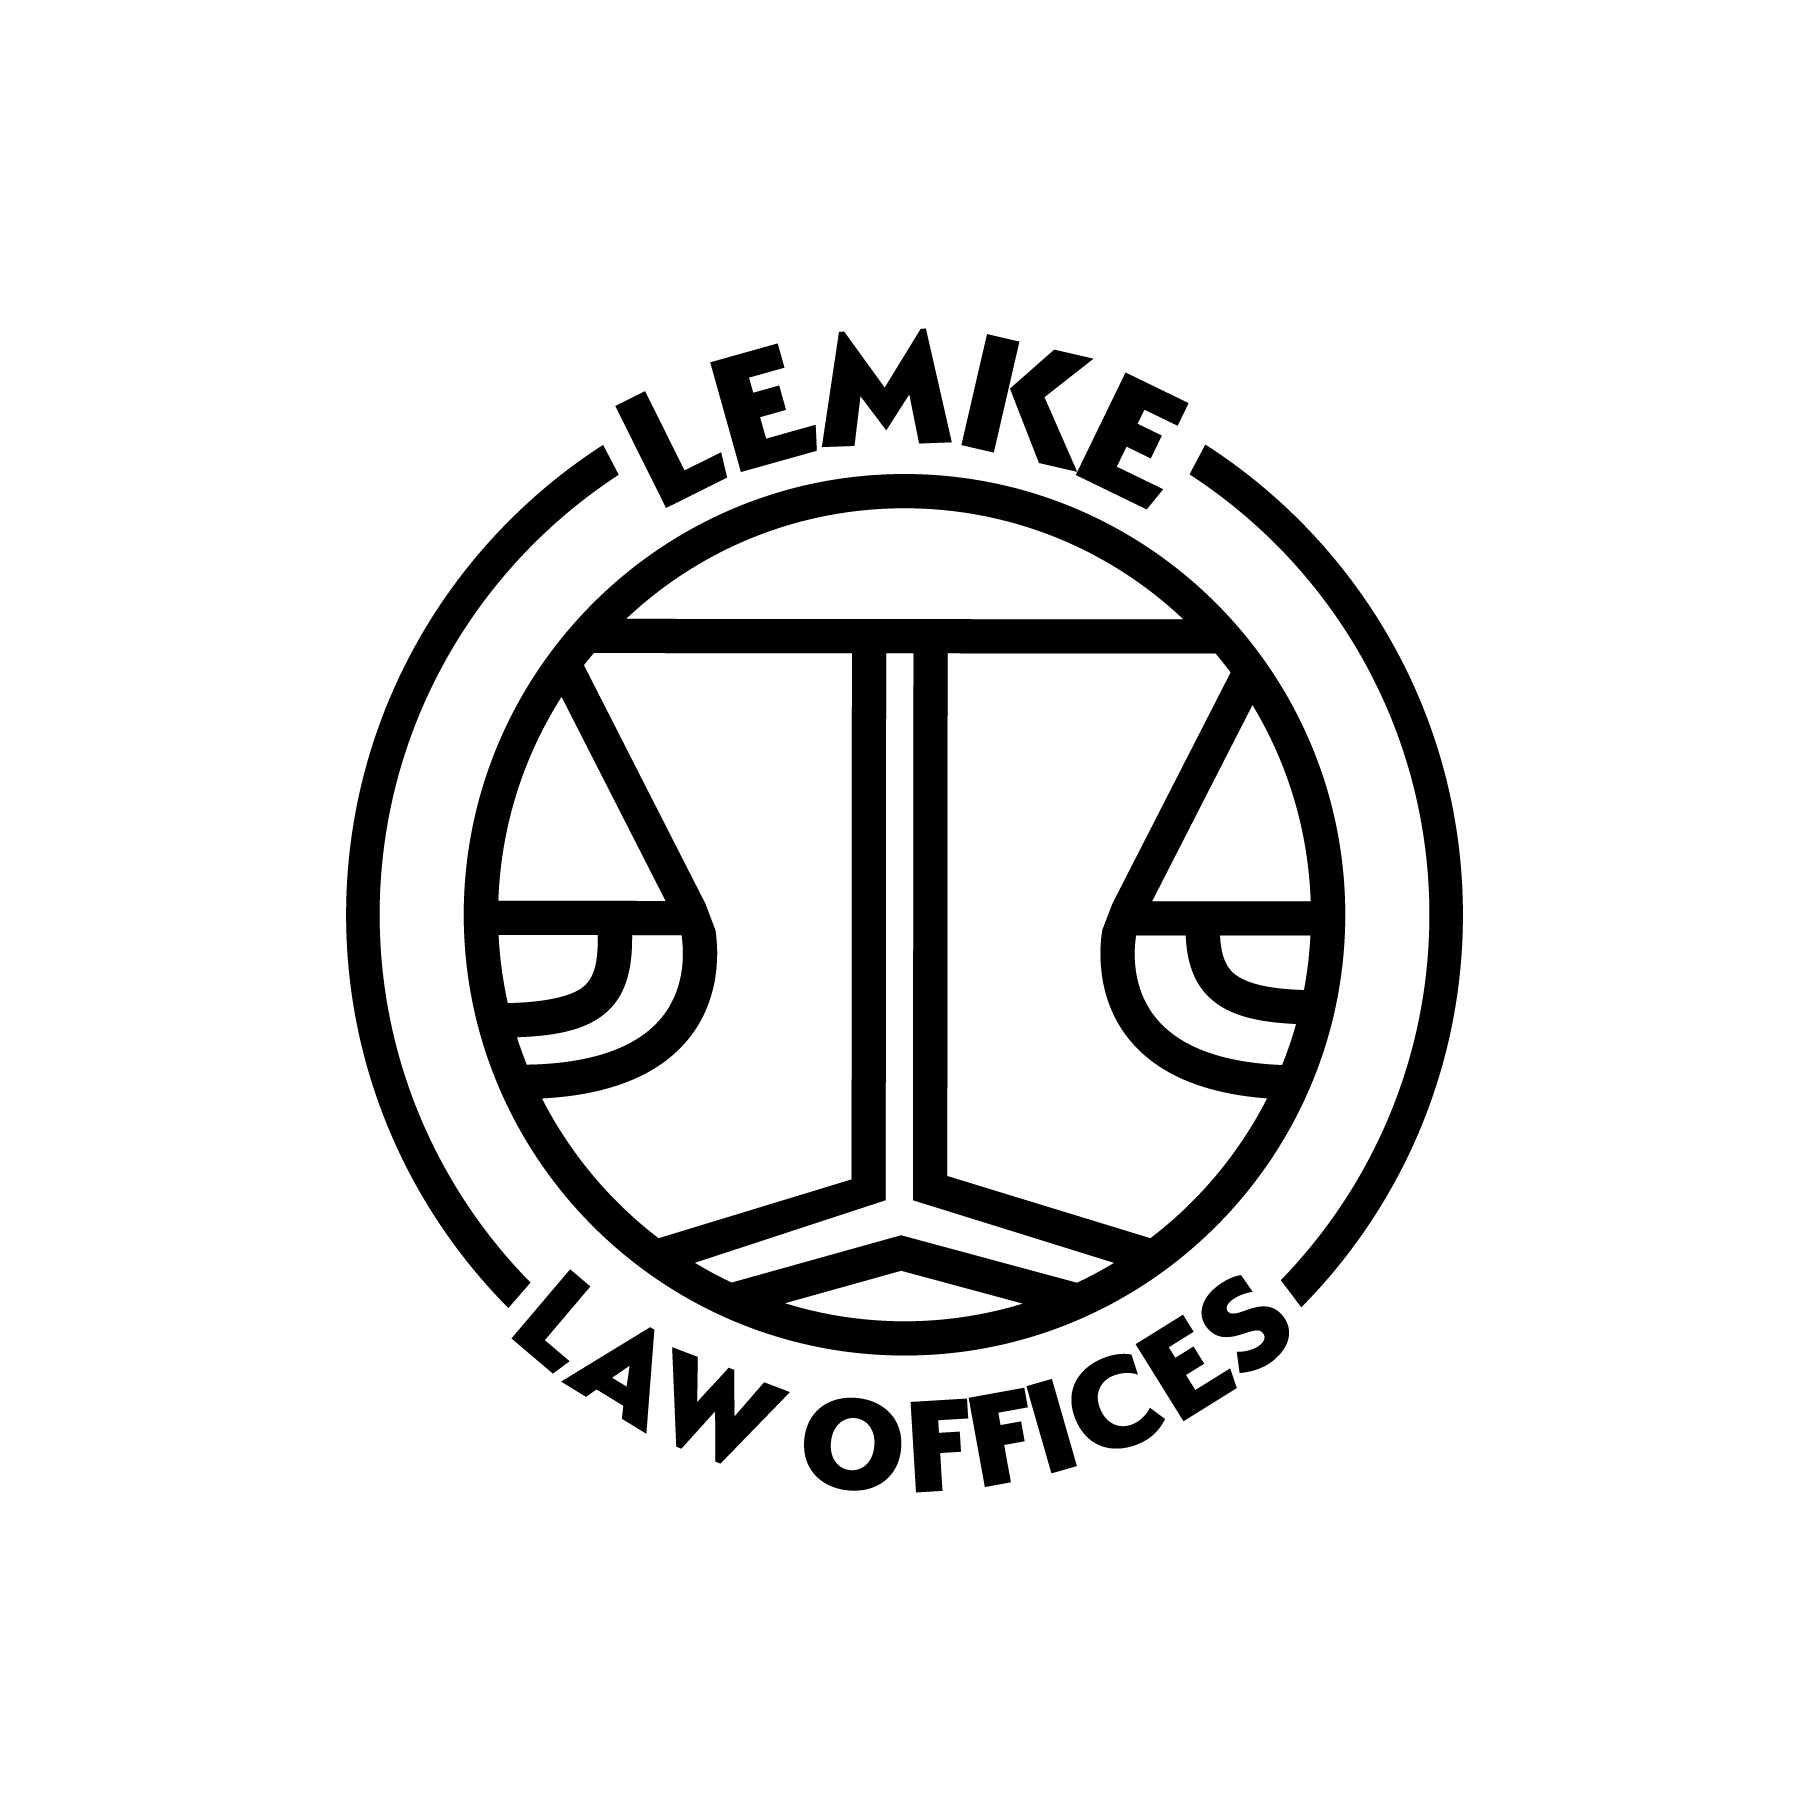 LemkeLawOffices-Black.png